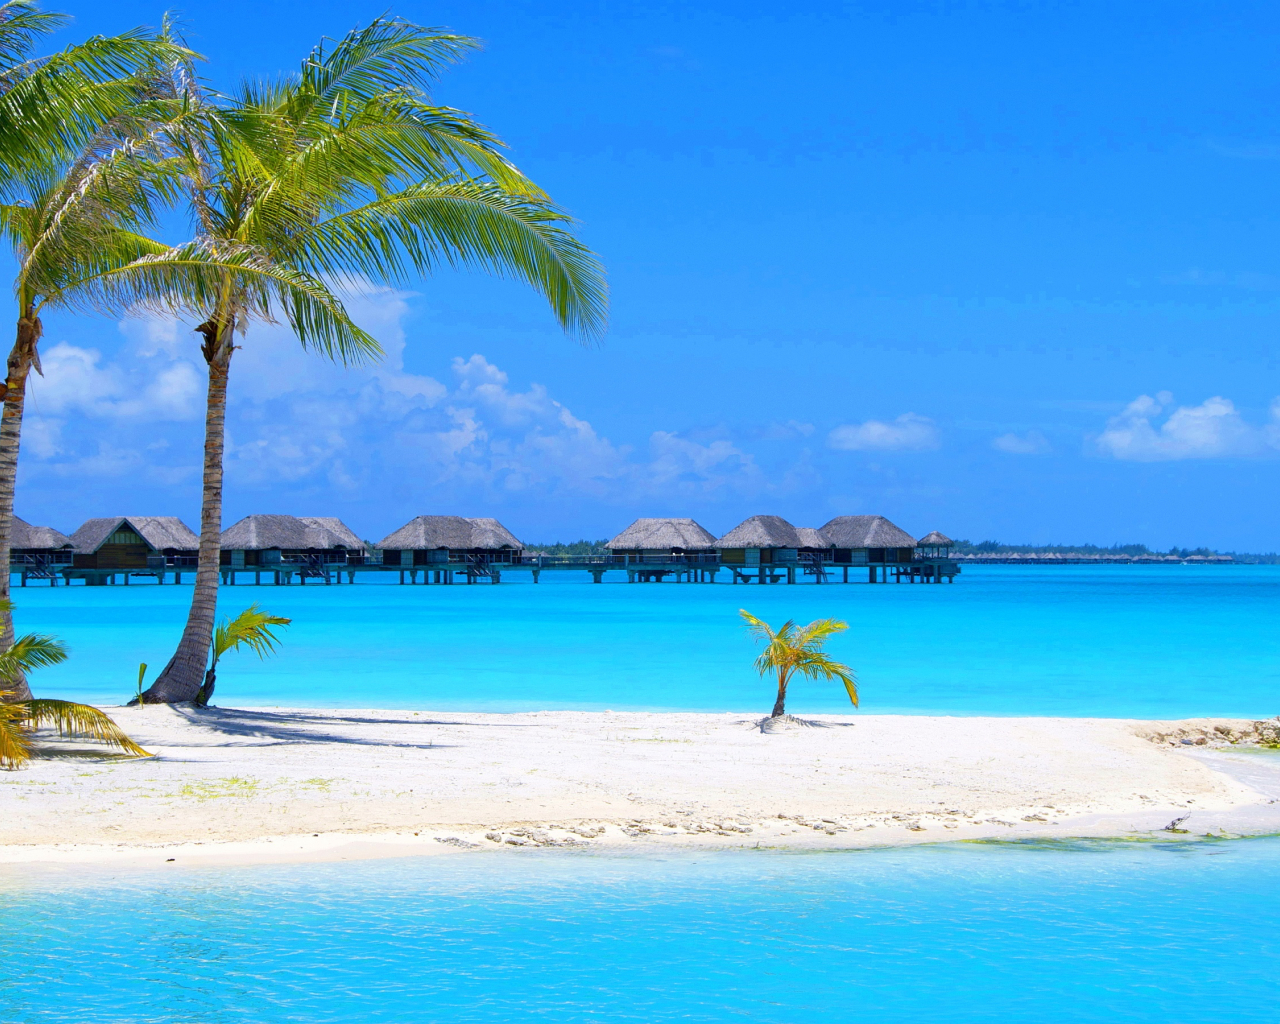 Free download 45 Beach Wallpaper For Mobile And Desktop In ...